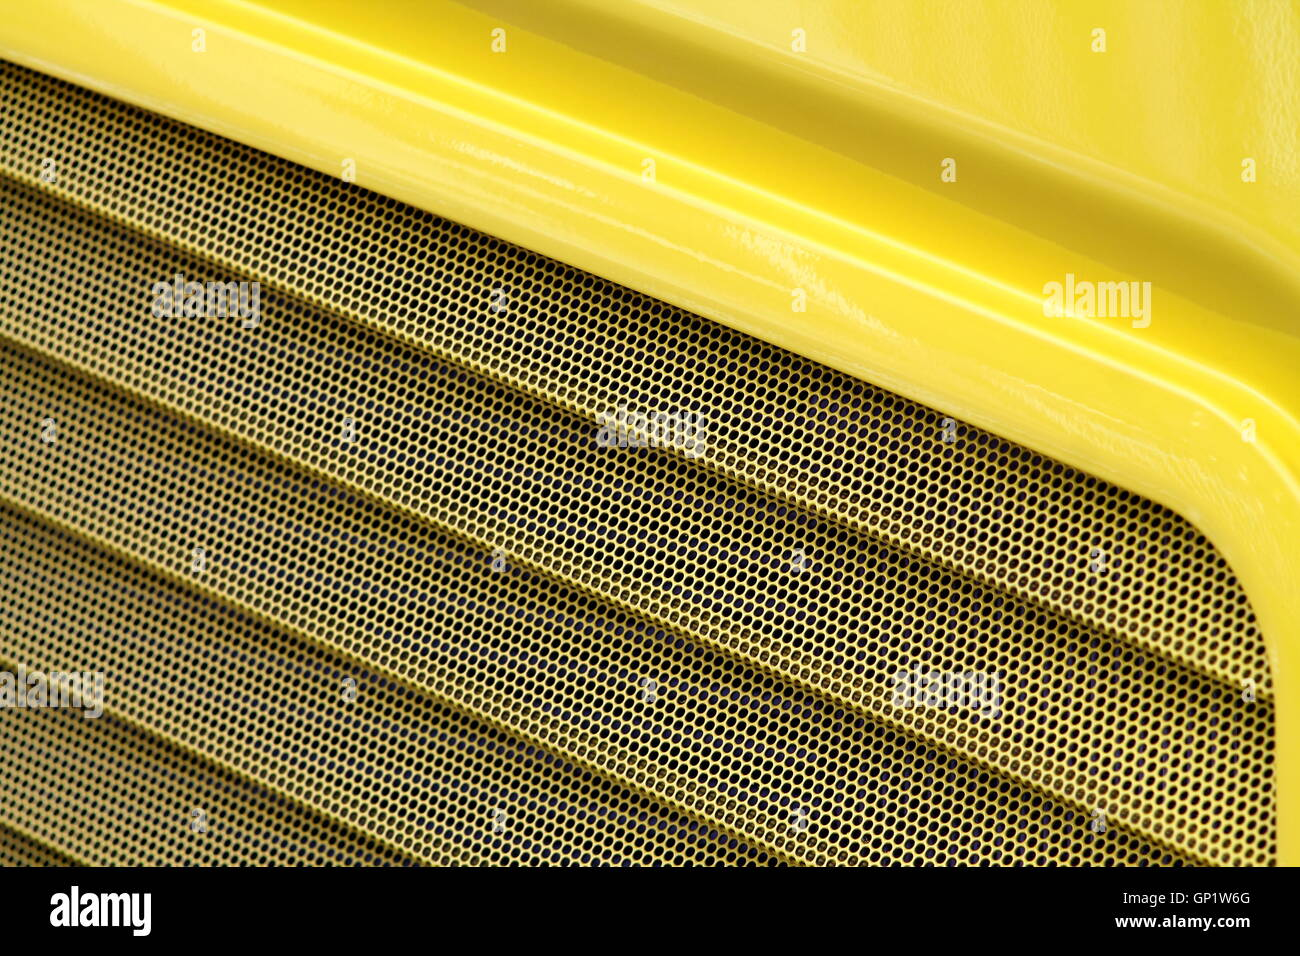 Macro of yellow lack surface of a bus with ventilation. - Stock Image